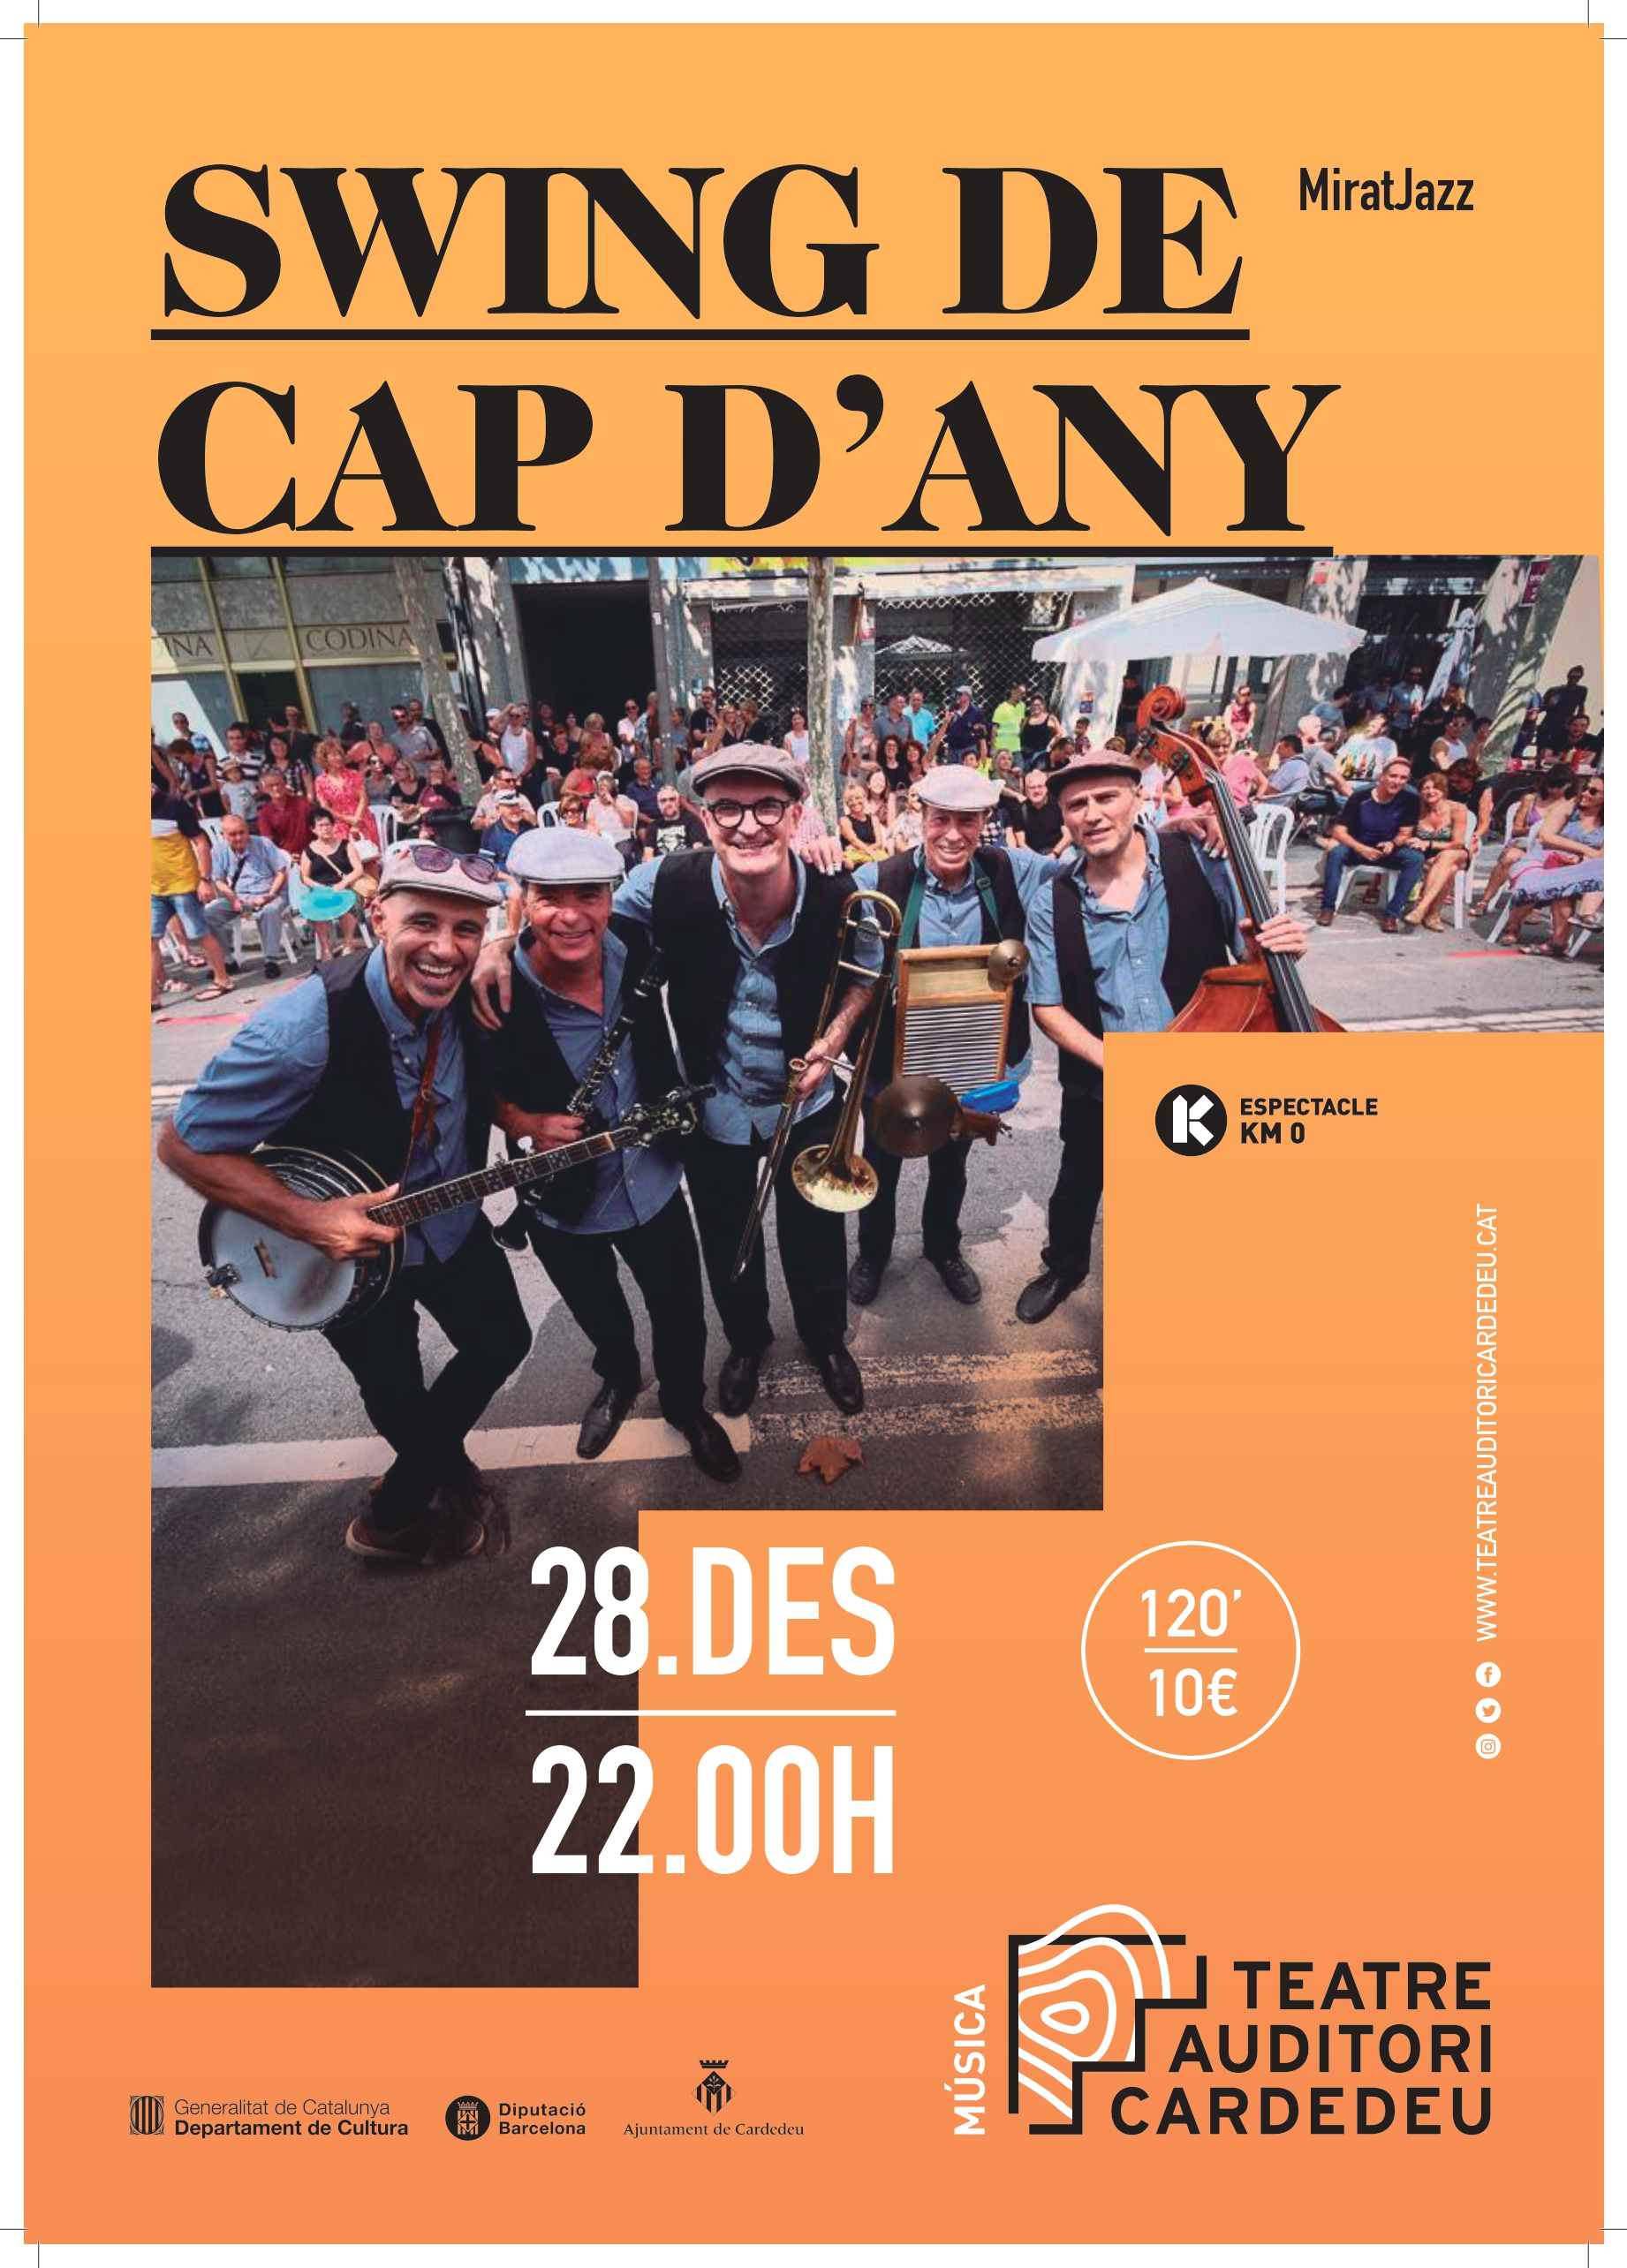 Swing de Cap d'Any – Miratjazz: 28 de desembre